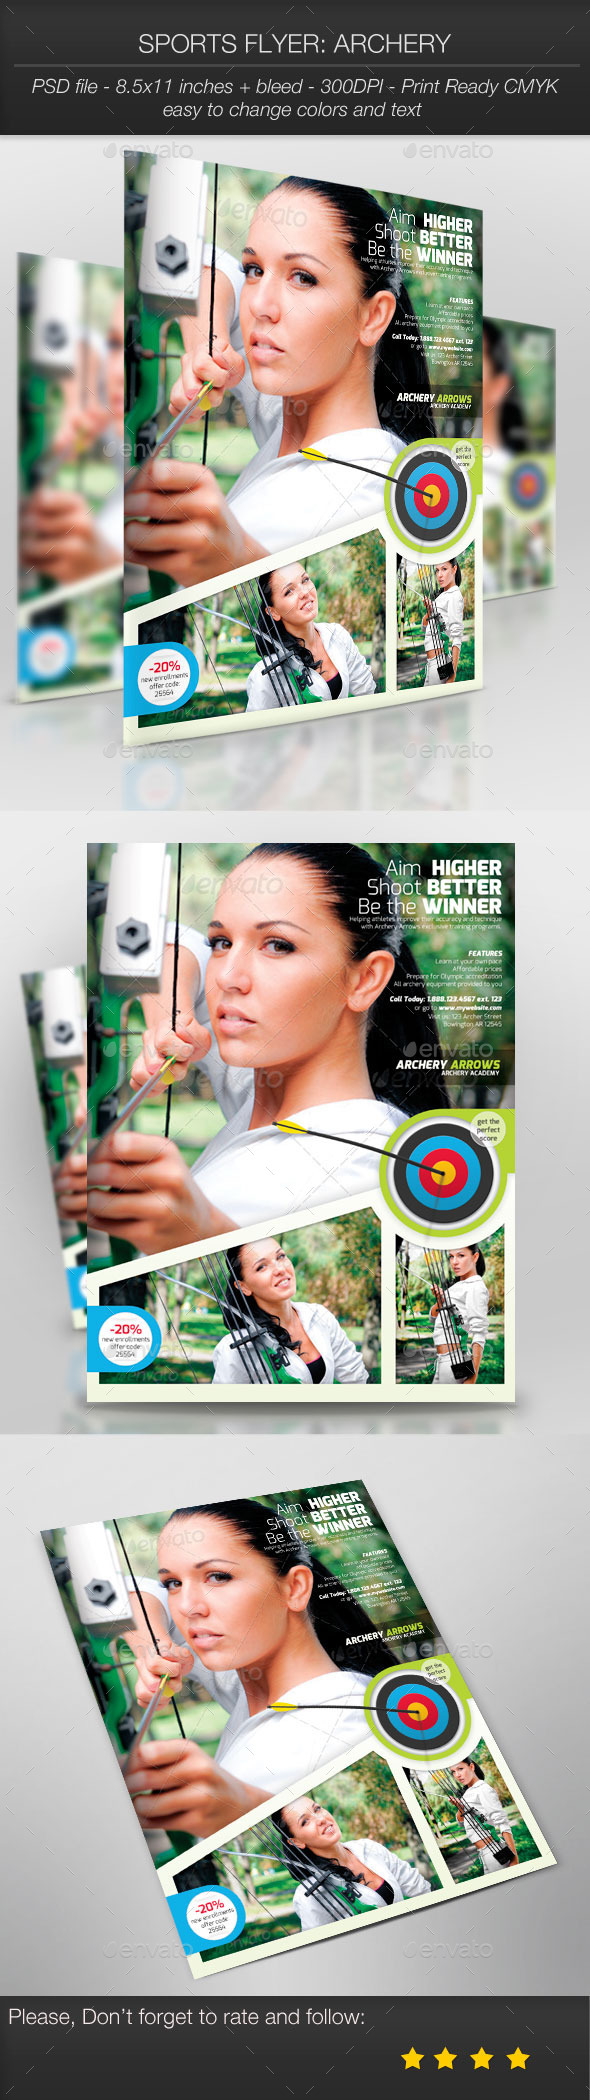 GraphicRiver Sports Flyer Archery 9266929